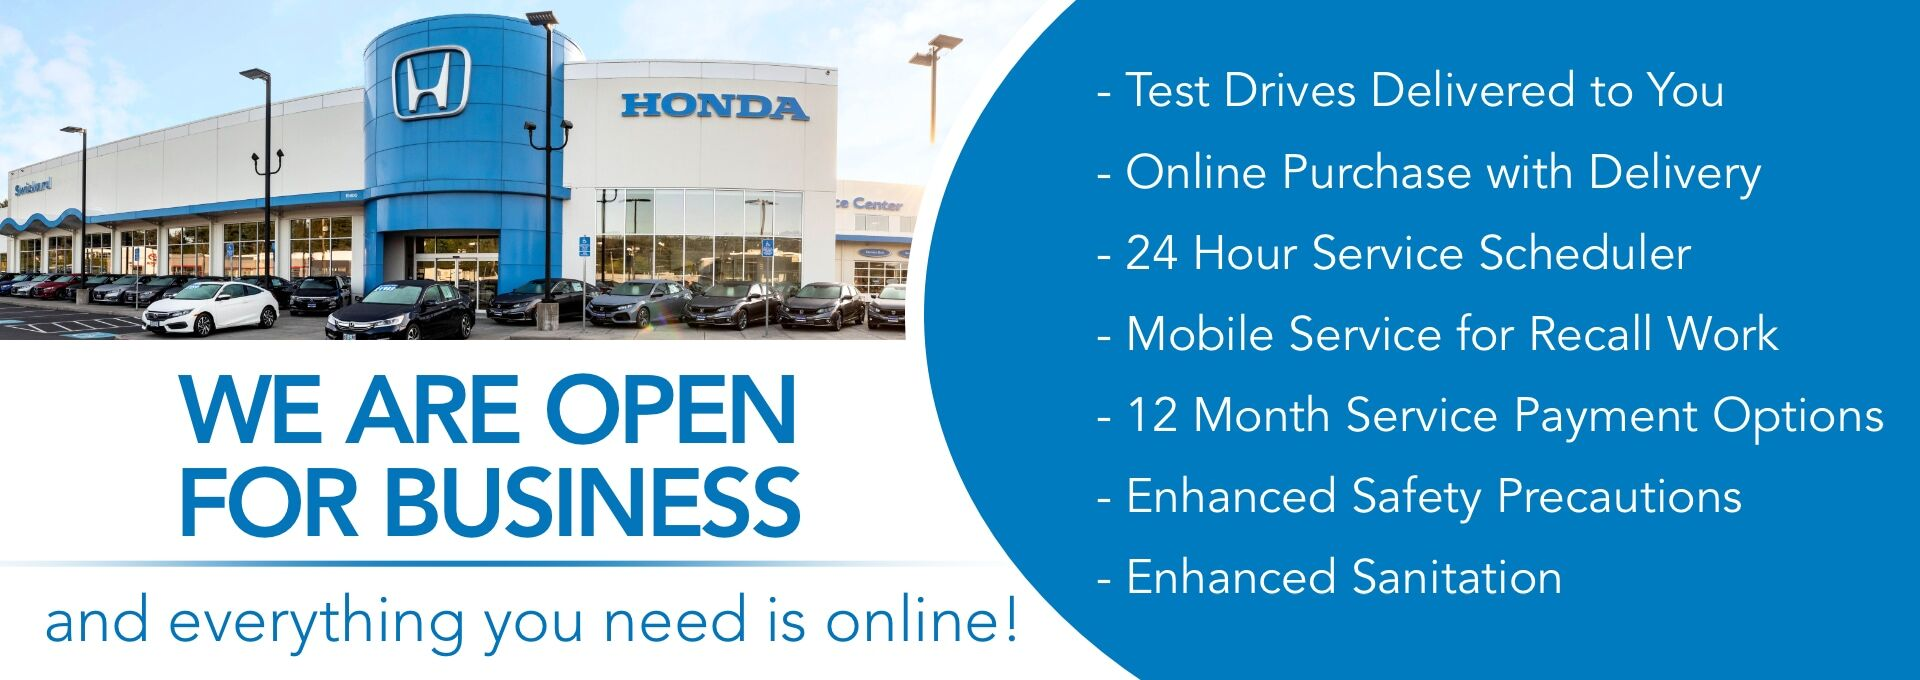 Swickard Honda Near Gladstone New Pre Owned Honda Cars Near Me